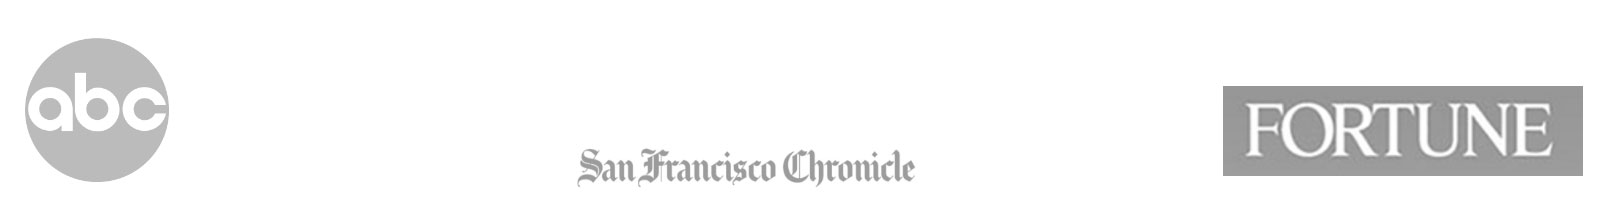 ABC, San Francisco Chronicle, Fortune Magazine - Featured Ann Rea